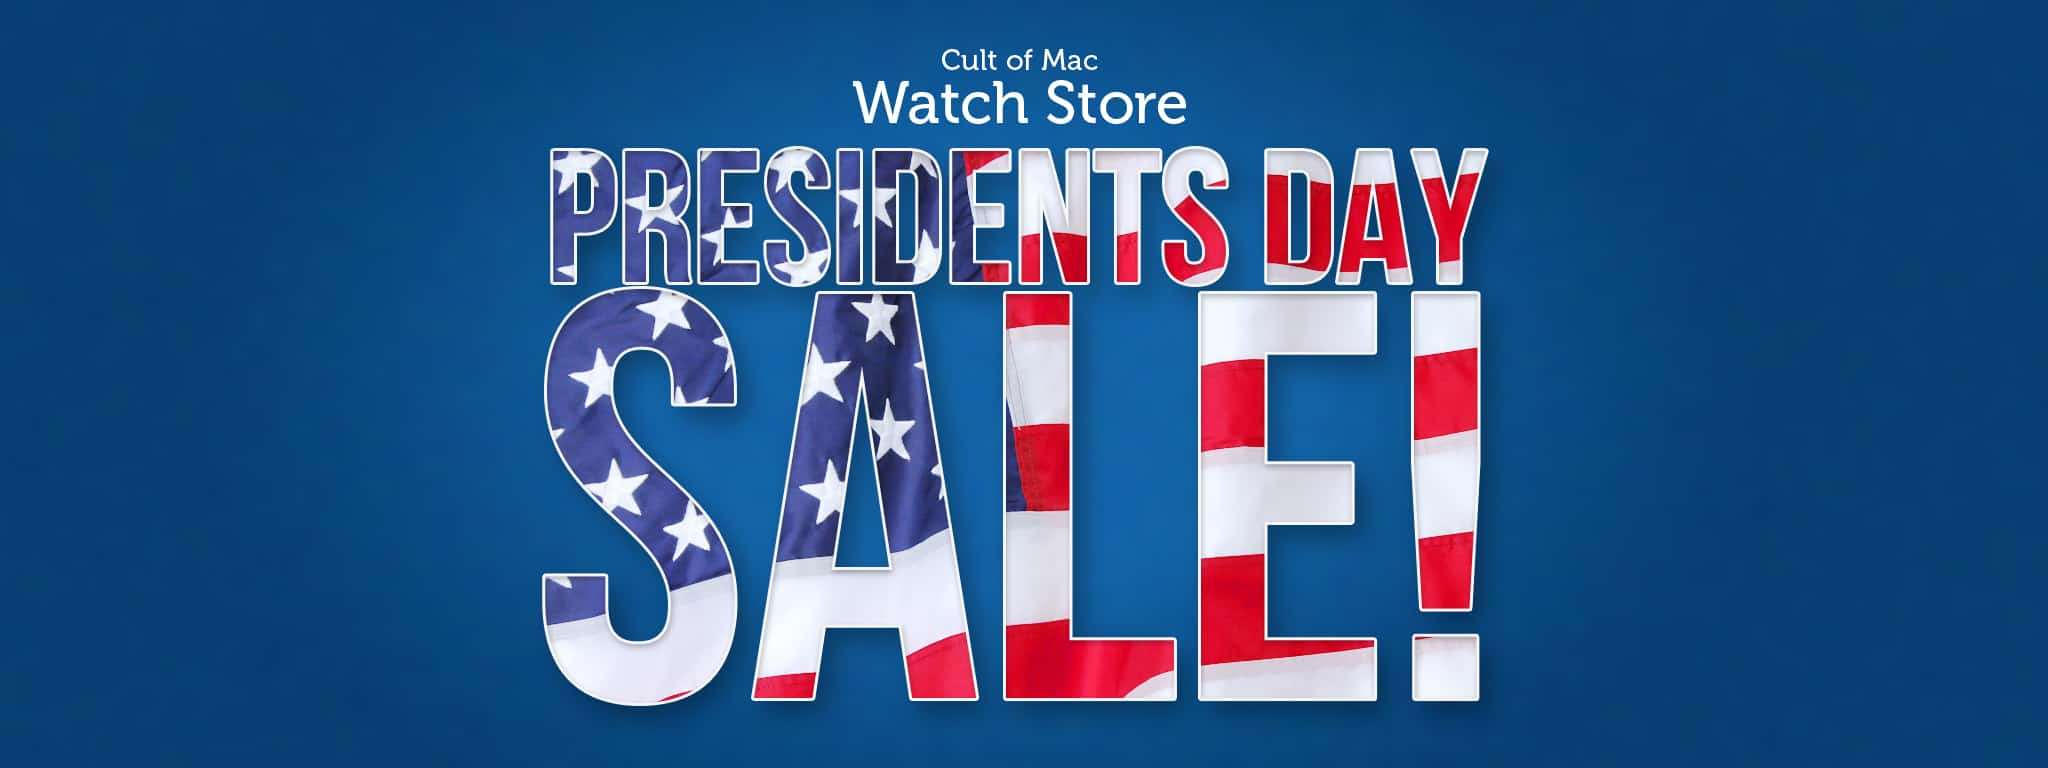 Watch Store 39 S President 39 S Day Weekend Sale Is On Cult